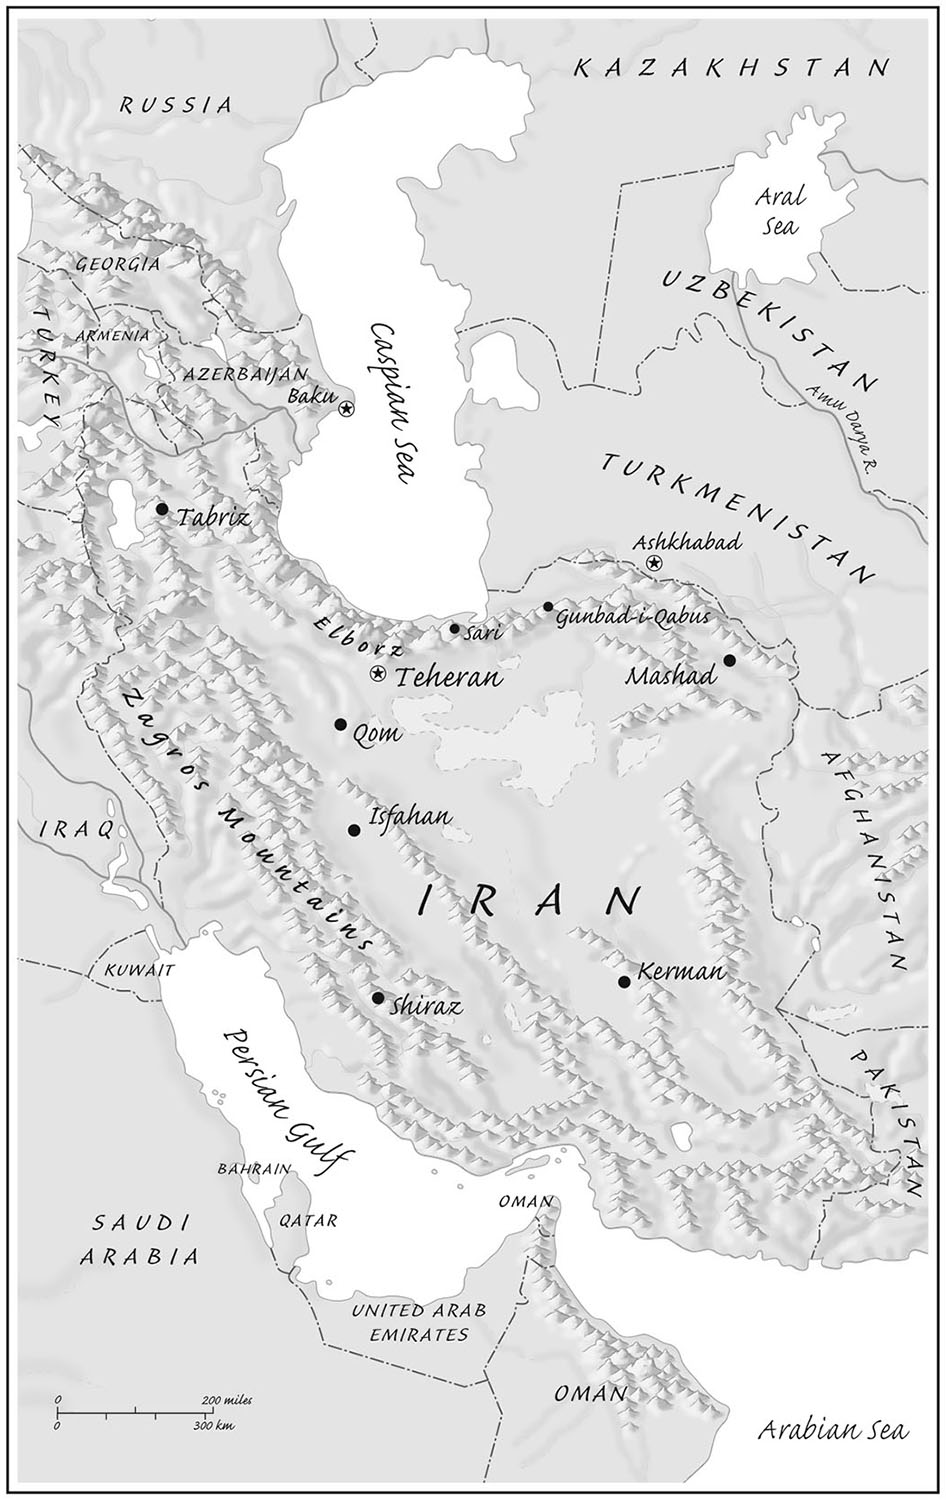 The Iranian Plateau, from   The Ends of the Earth: A Journey at the Dawn of the 21st Century,  by Robert D. Kaplan  (Random House, 1996). Map copyright © David Lindroth Inc.  A prescient view of regions that have become more volatile since the book's publication.